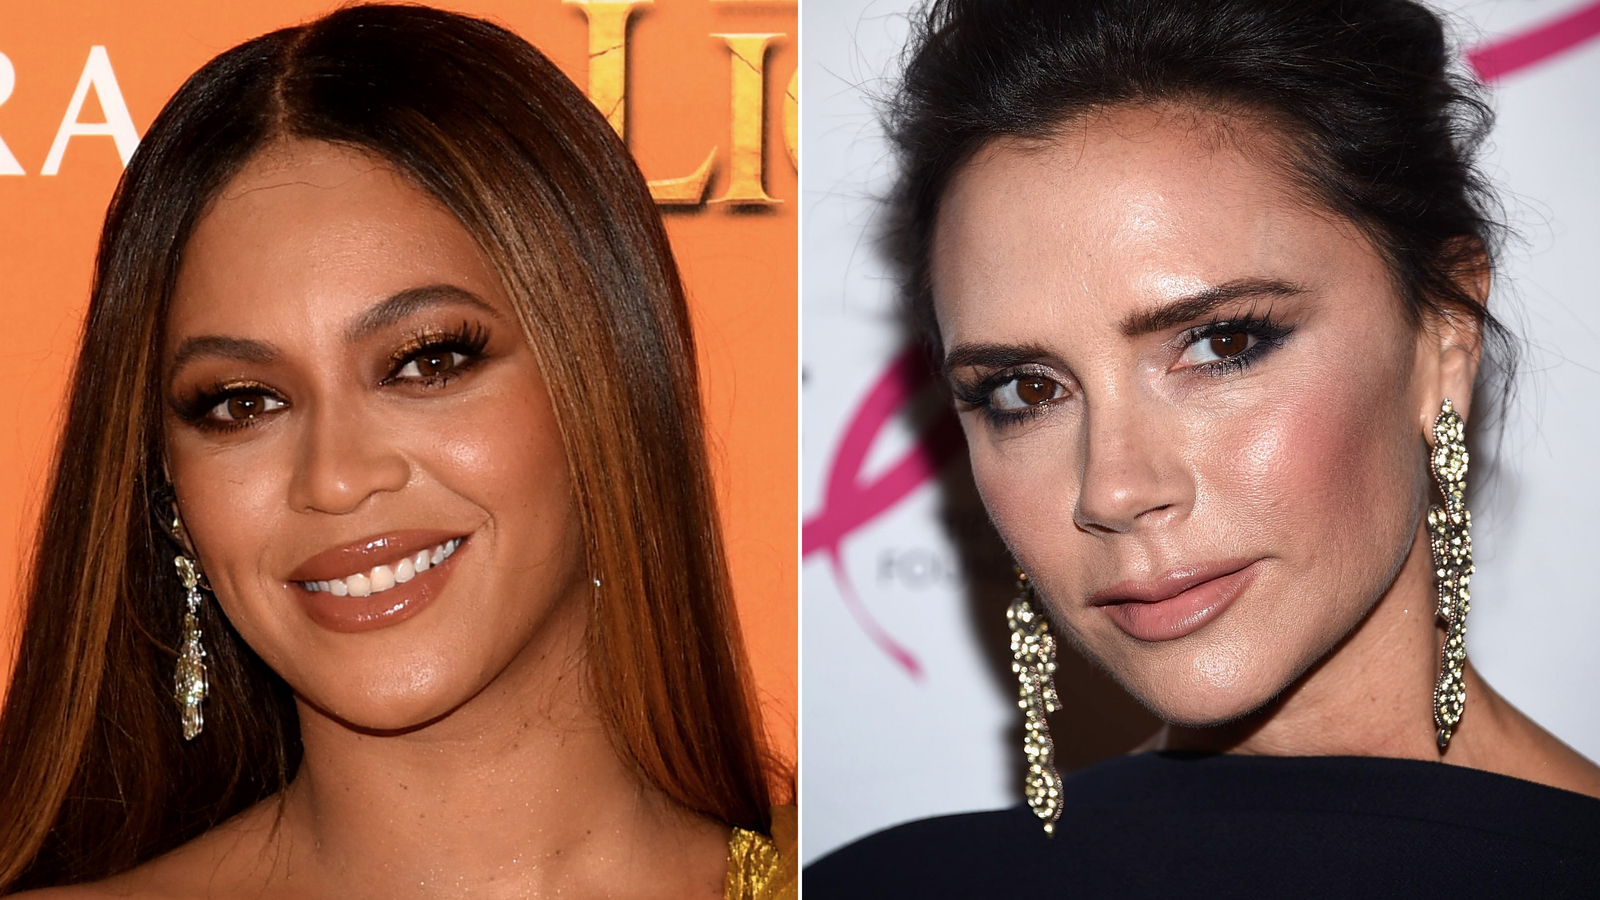 Victoria Beckham says Spice Girls inspired Beyoncé